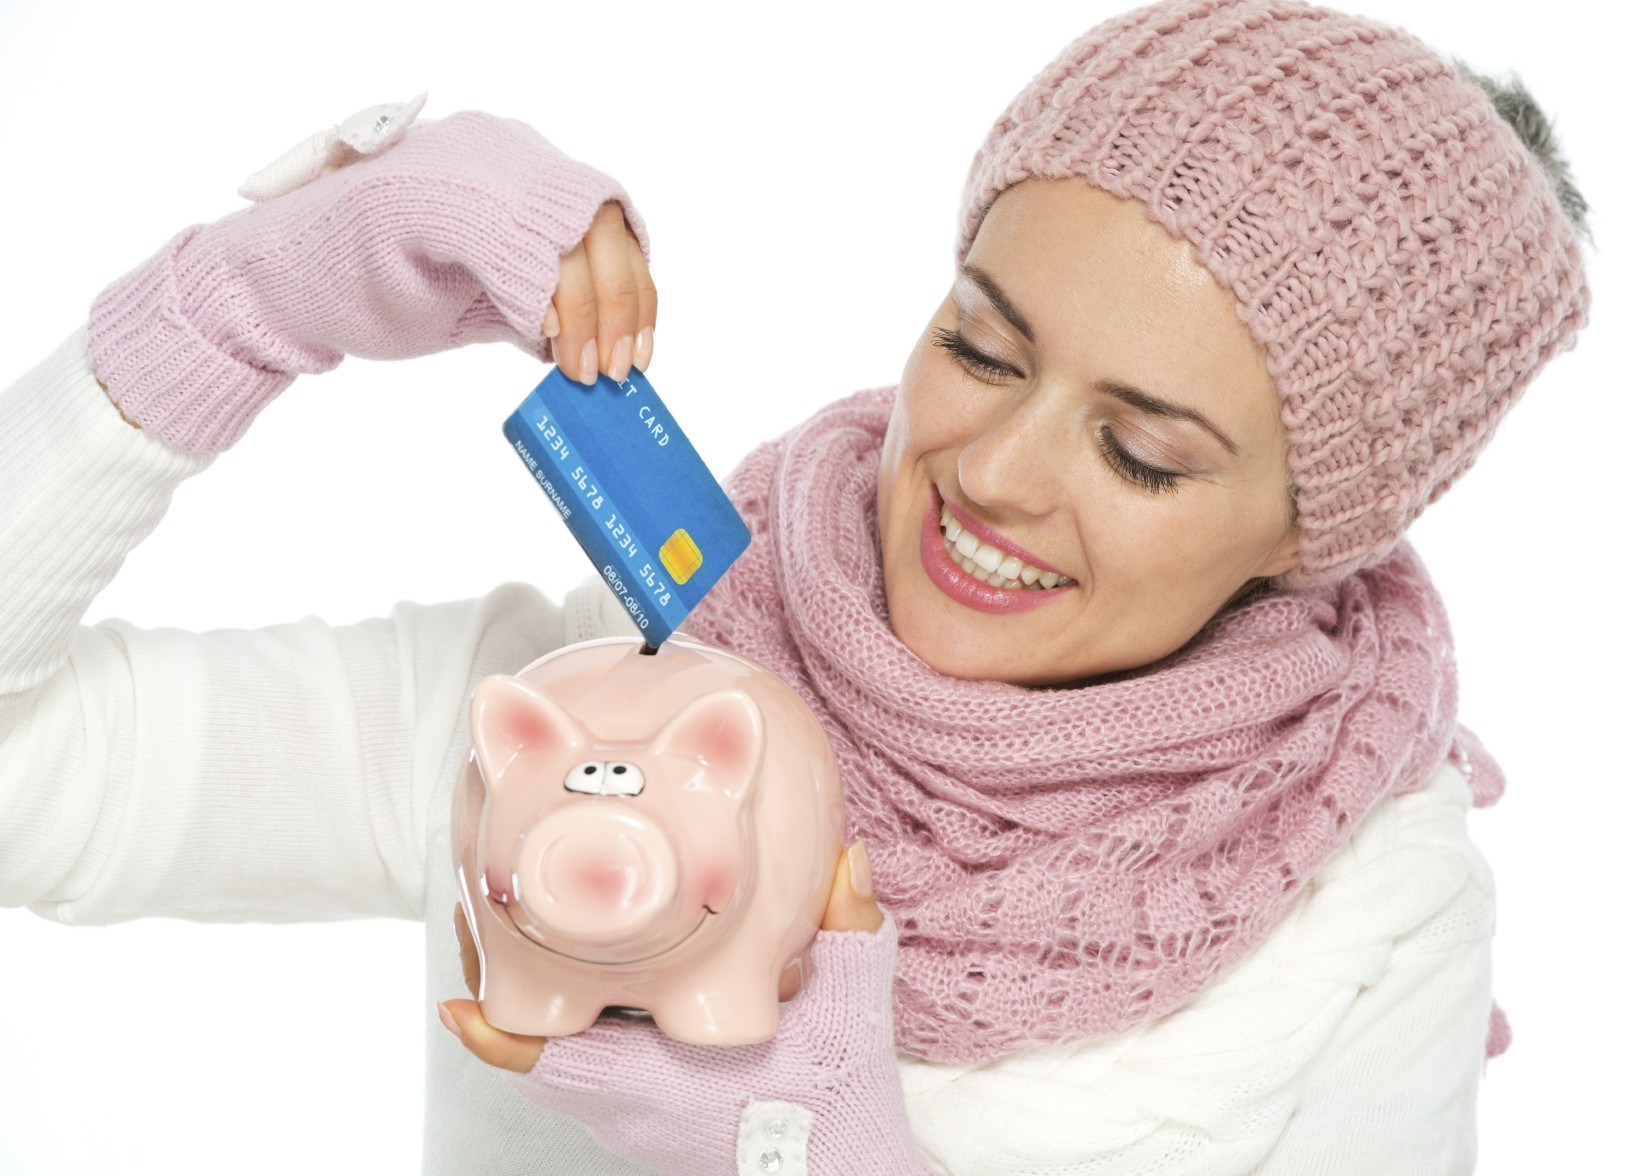 how to do a cash advance on a credit card